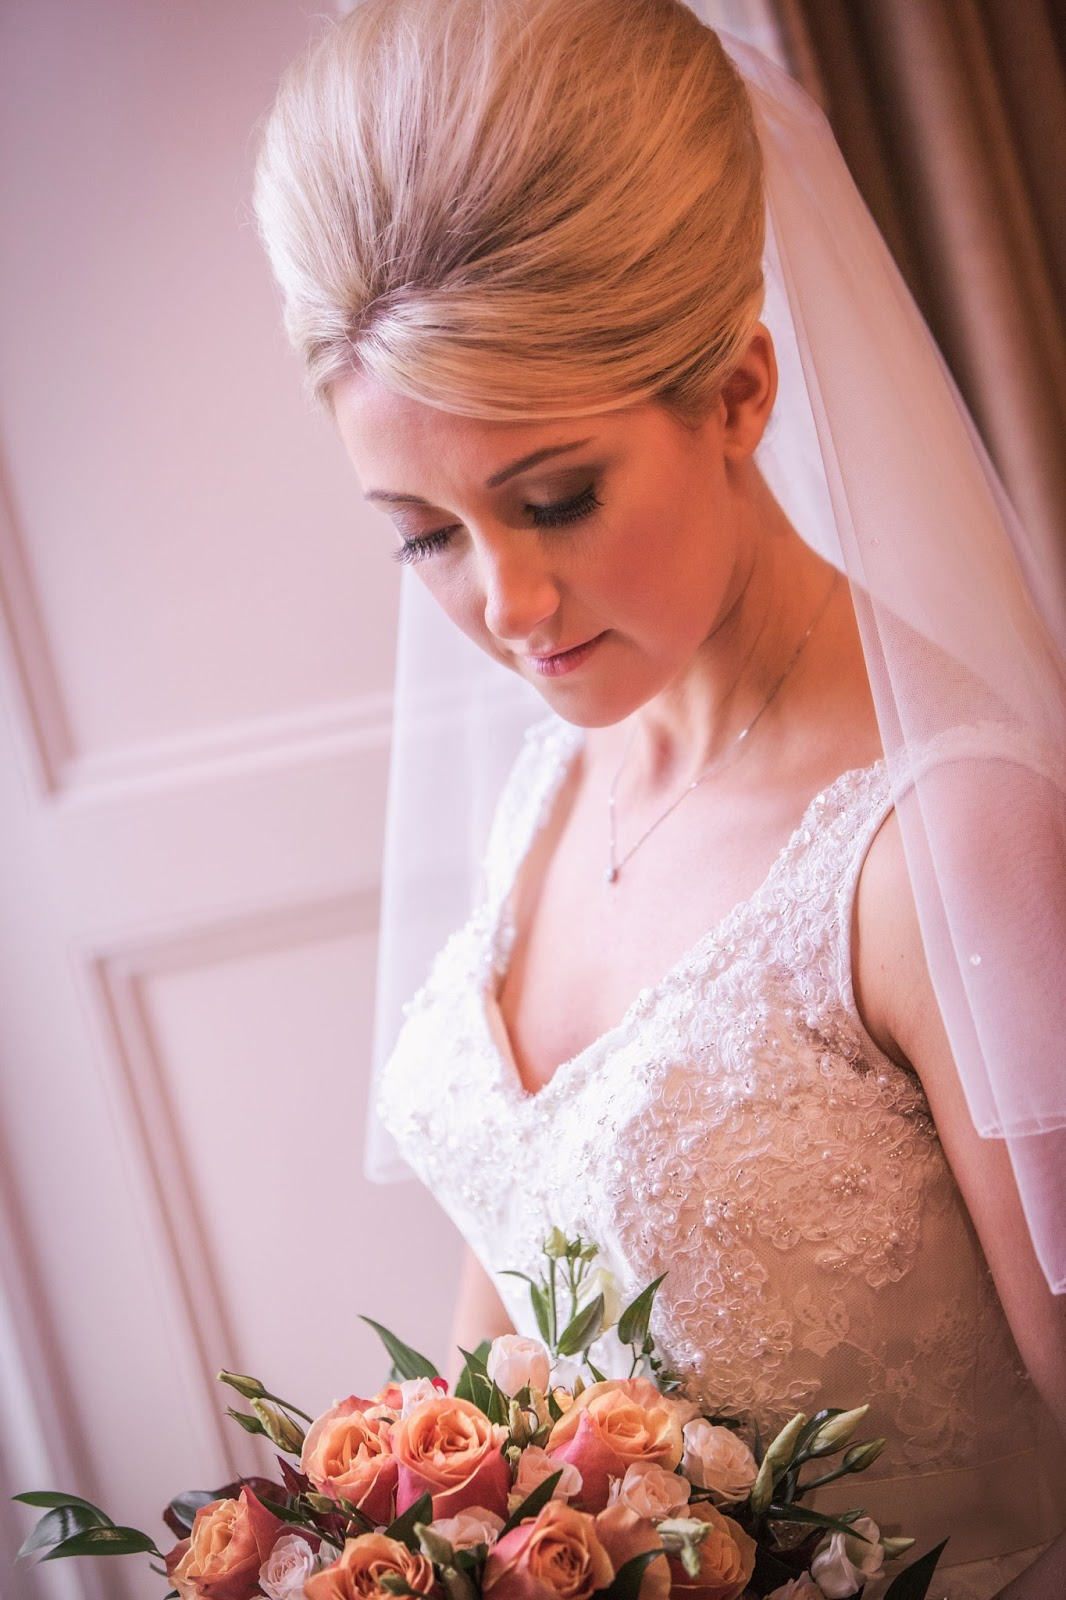 Beehive hairstyle for a Brigitte Bardot inspired bridal look